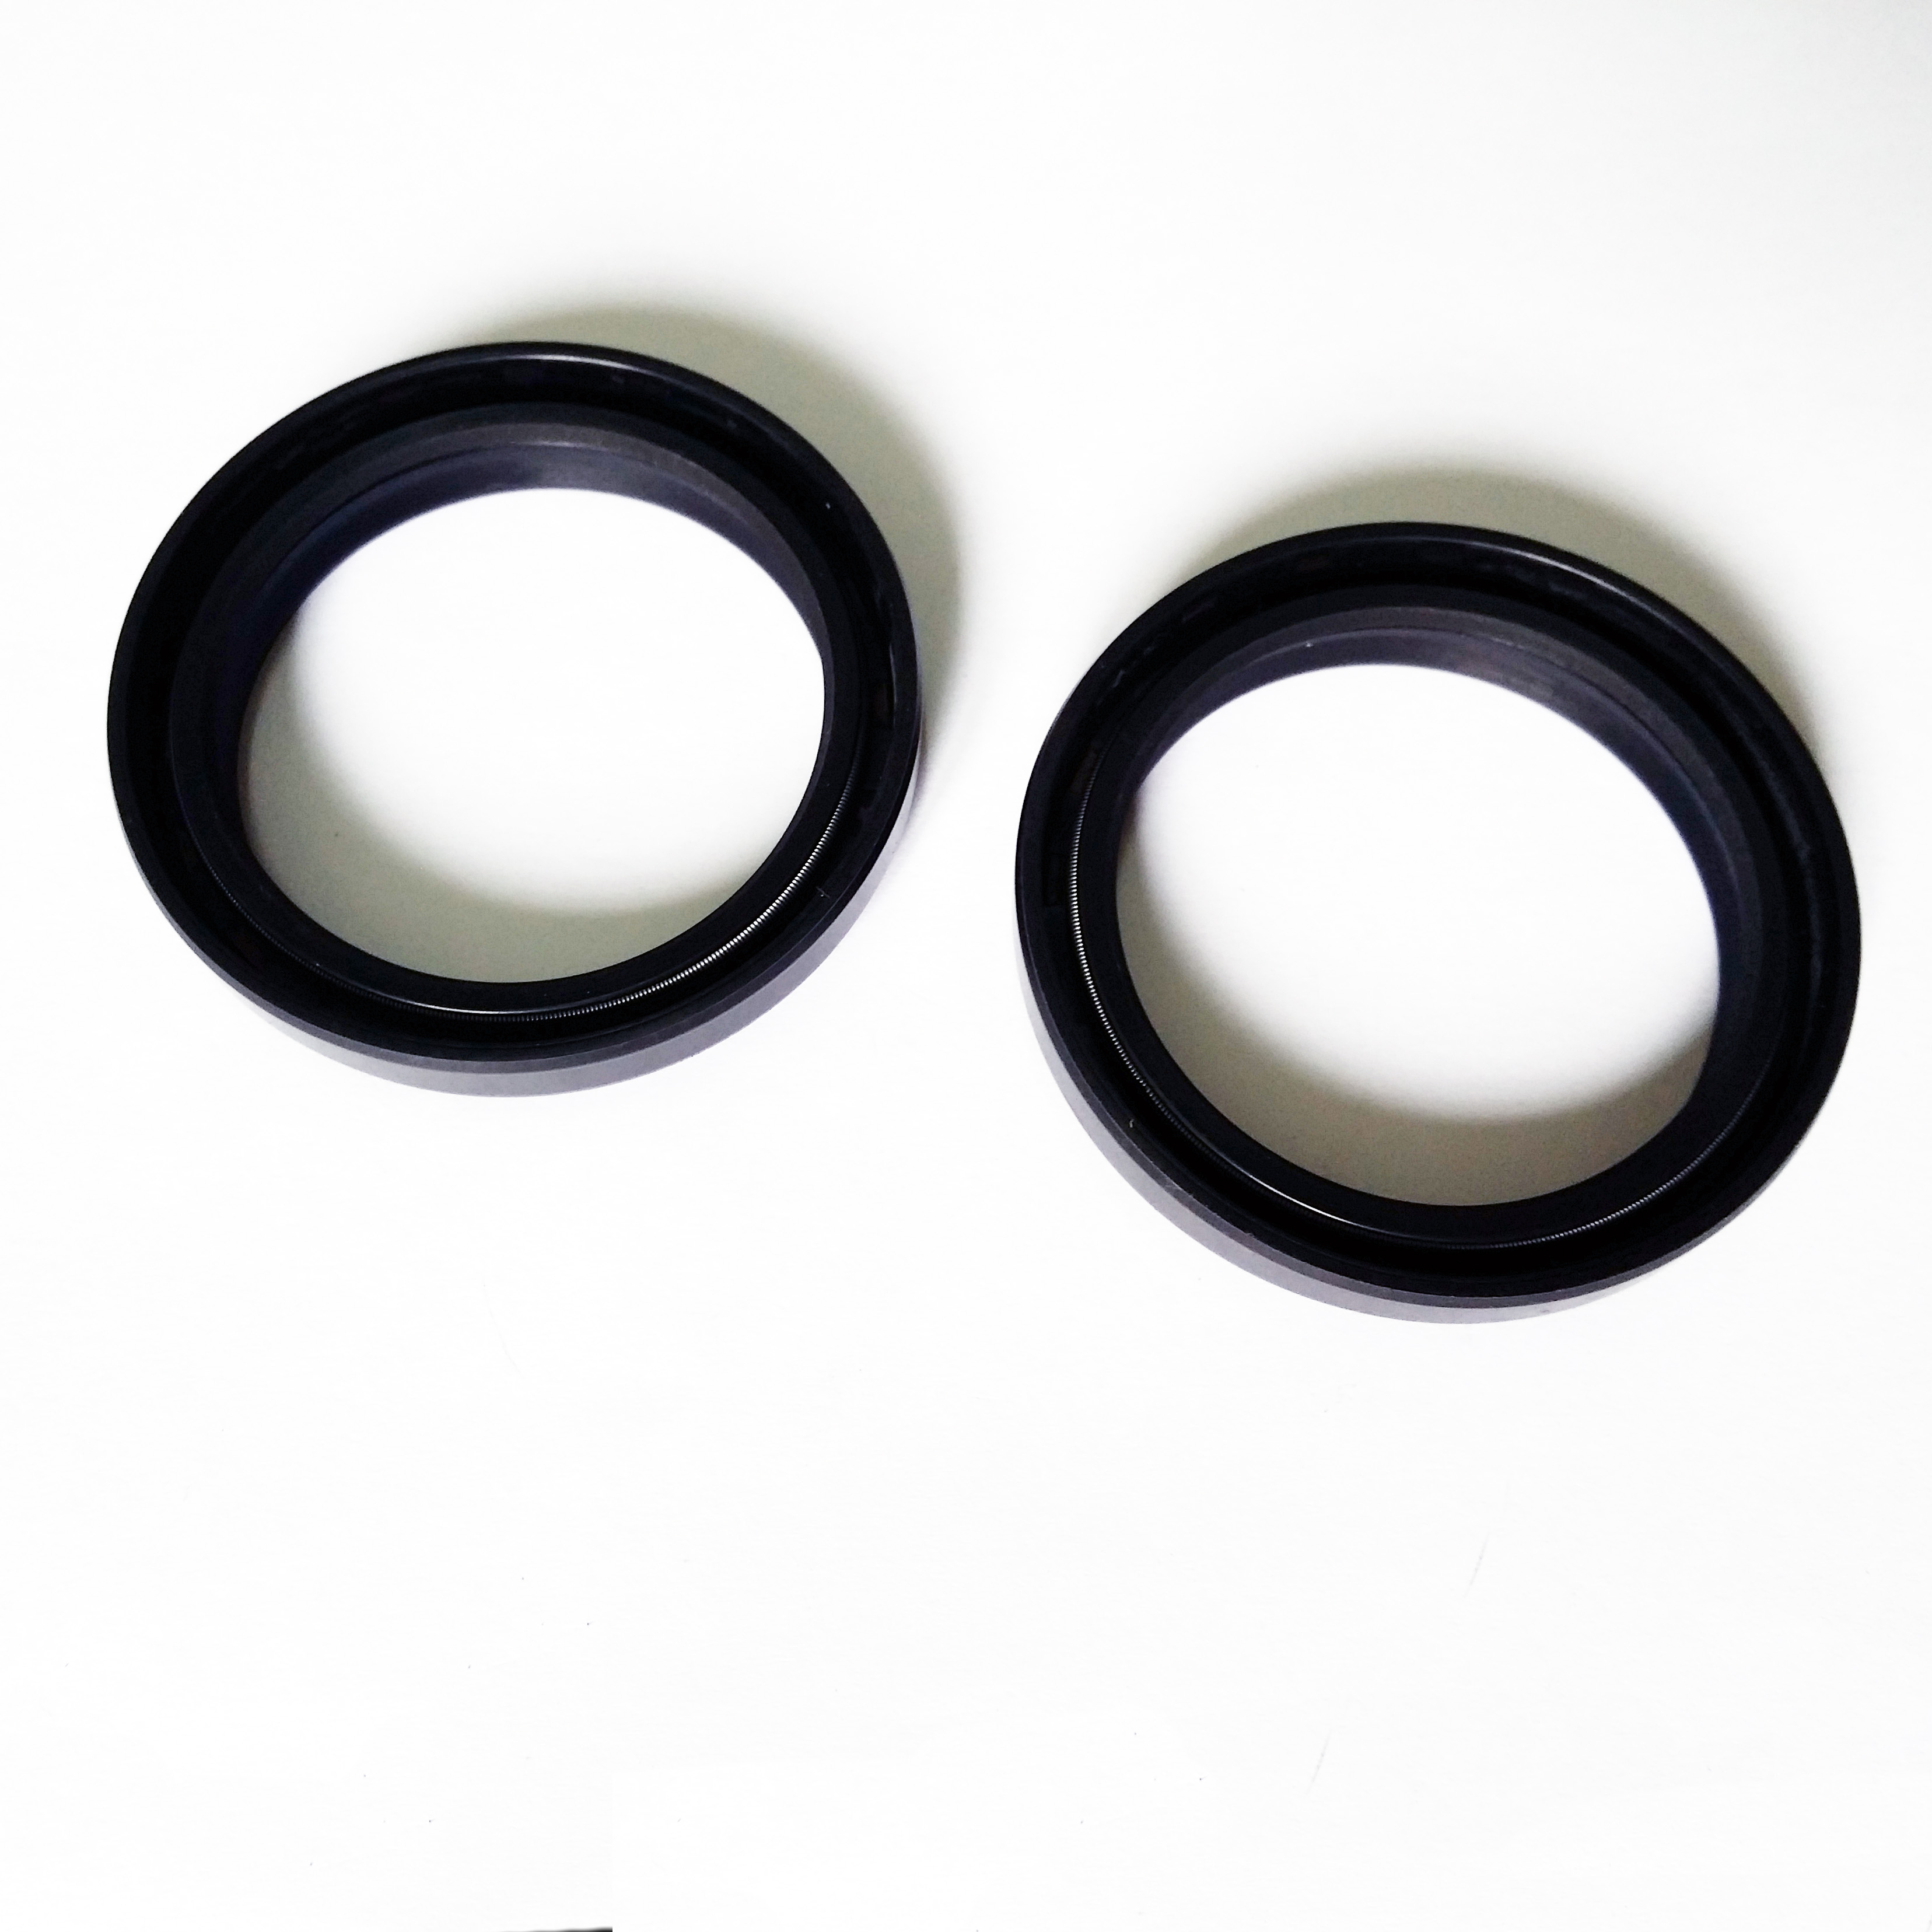 K-Tech KTM 250 SX 2000-2001 NOK Front Fork Oil Seals 43x53x9.5mm